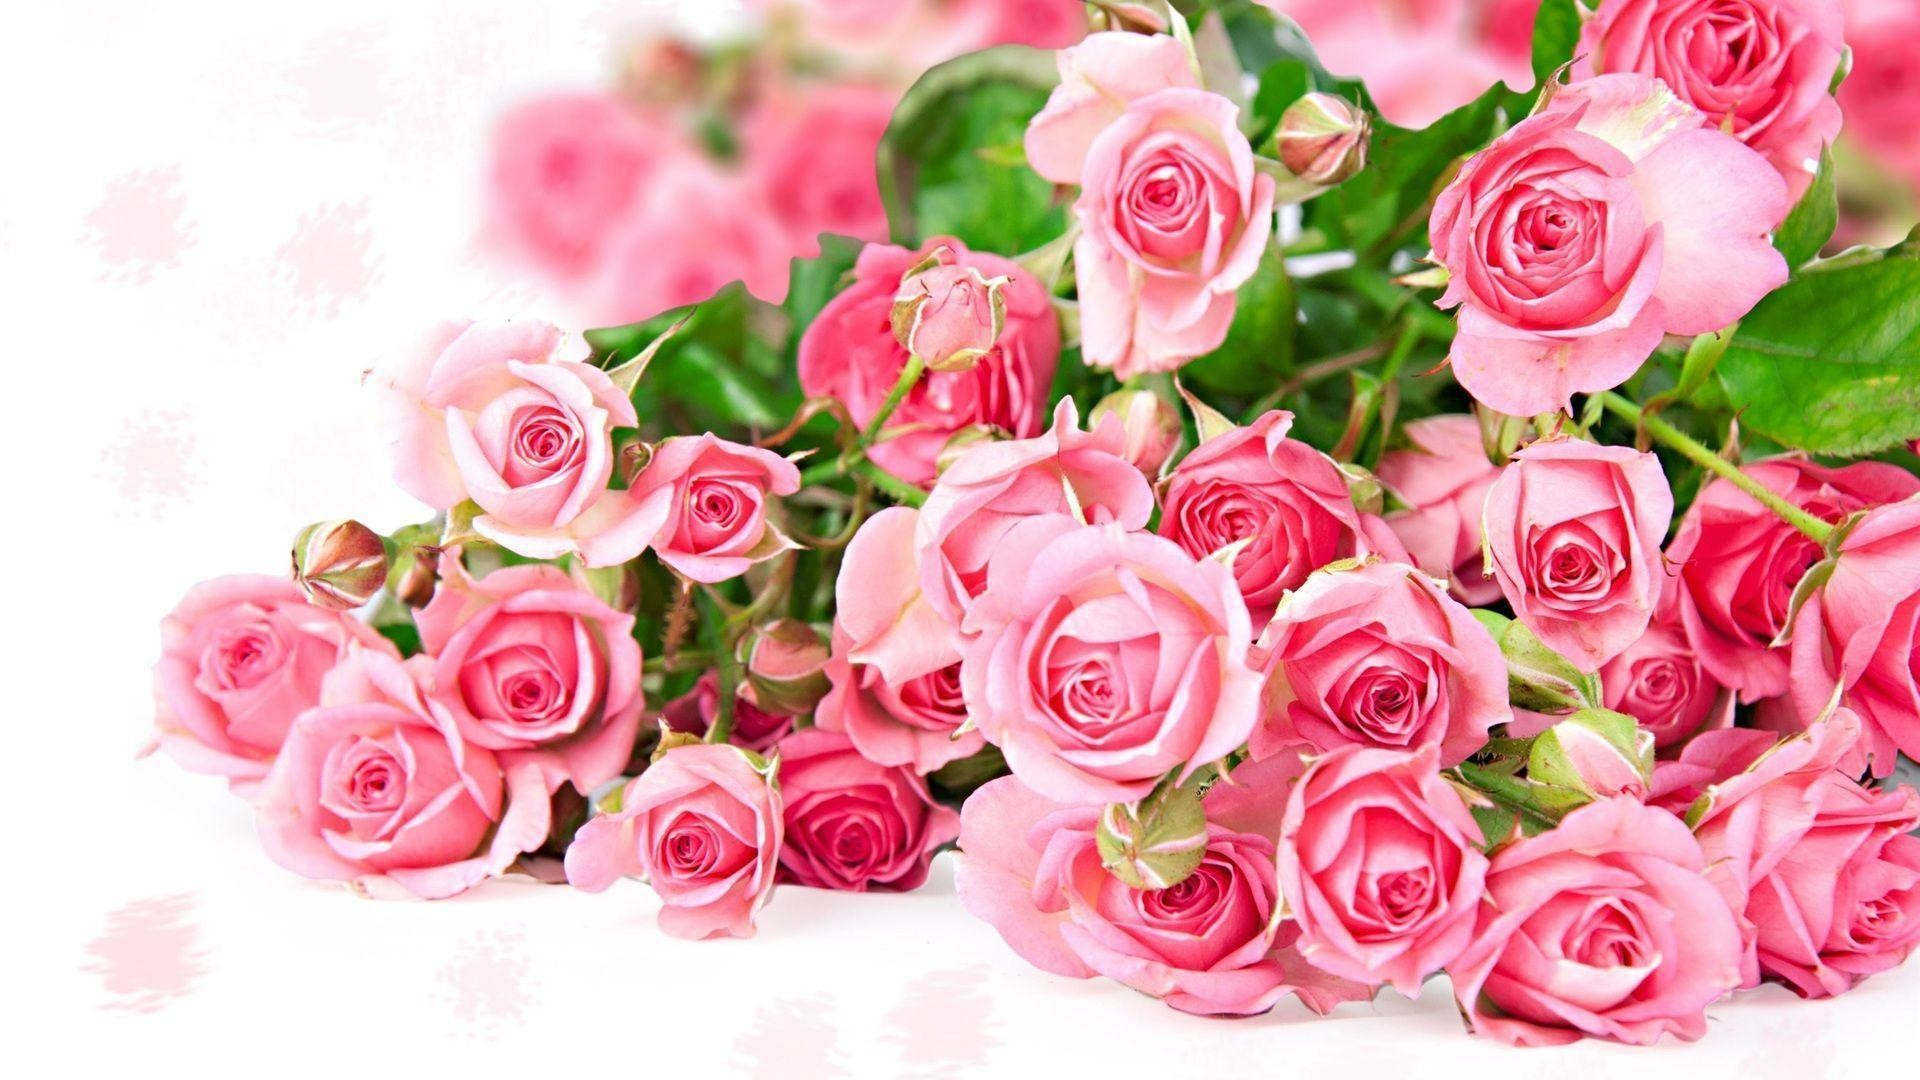 Res: 1920x1080, Flowers For > Pink Roses Wallpapers